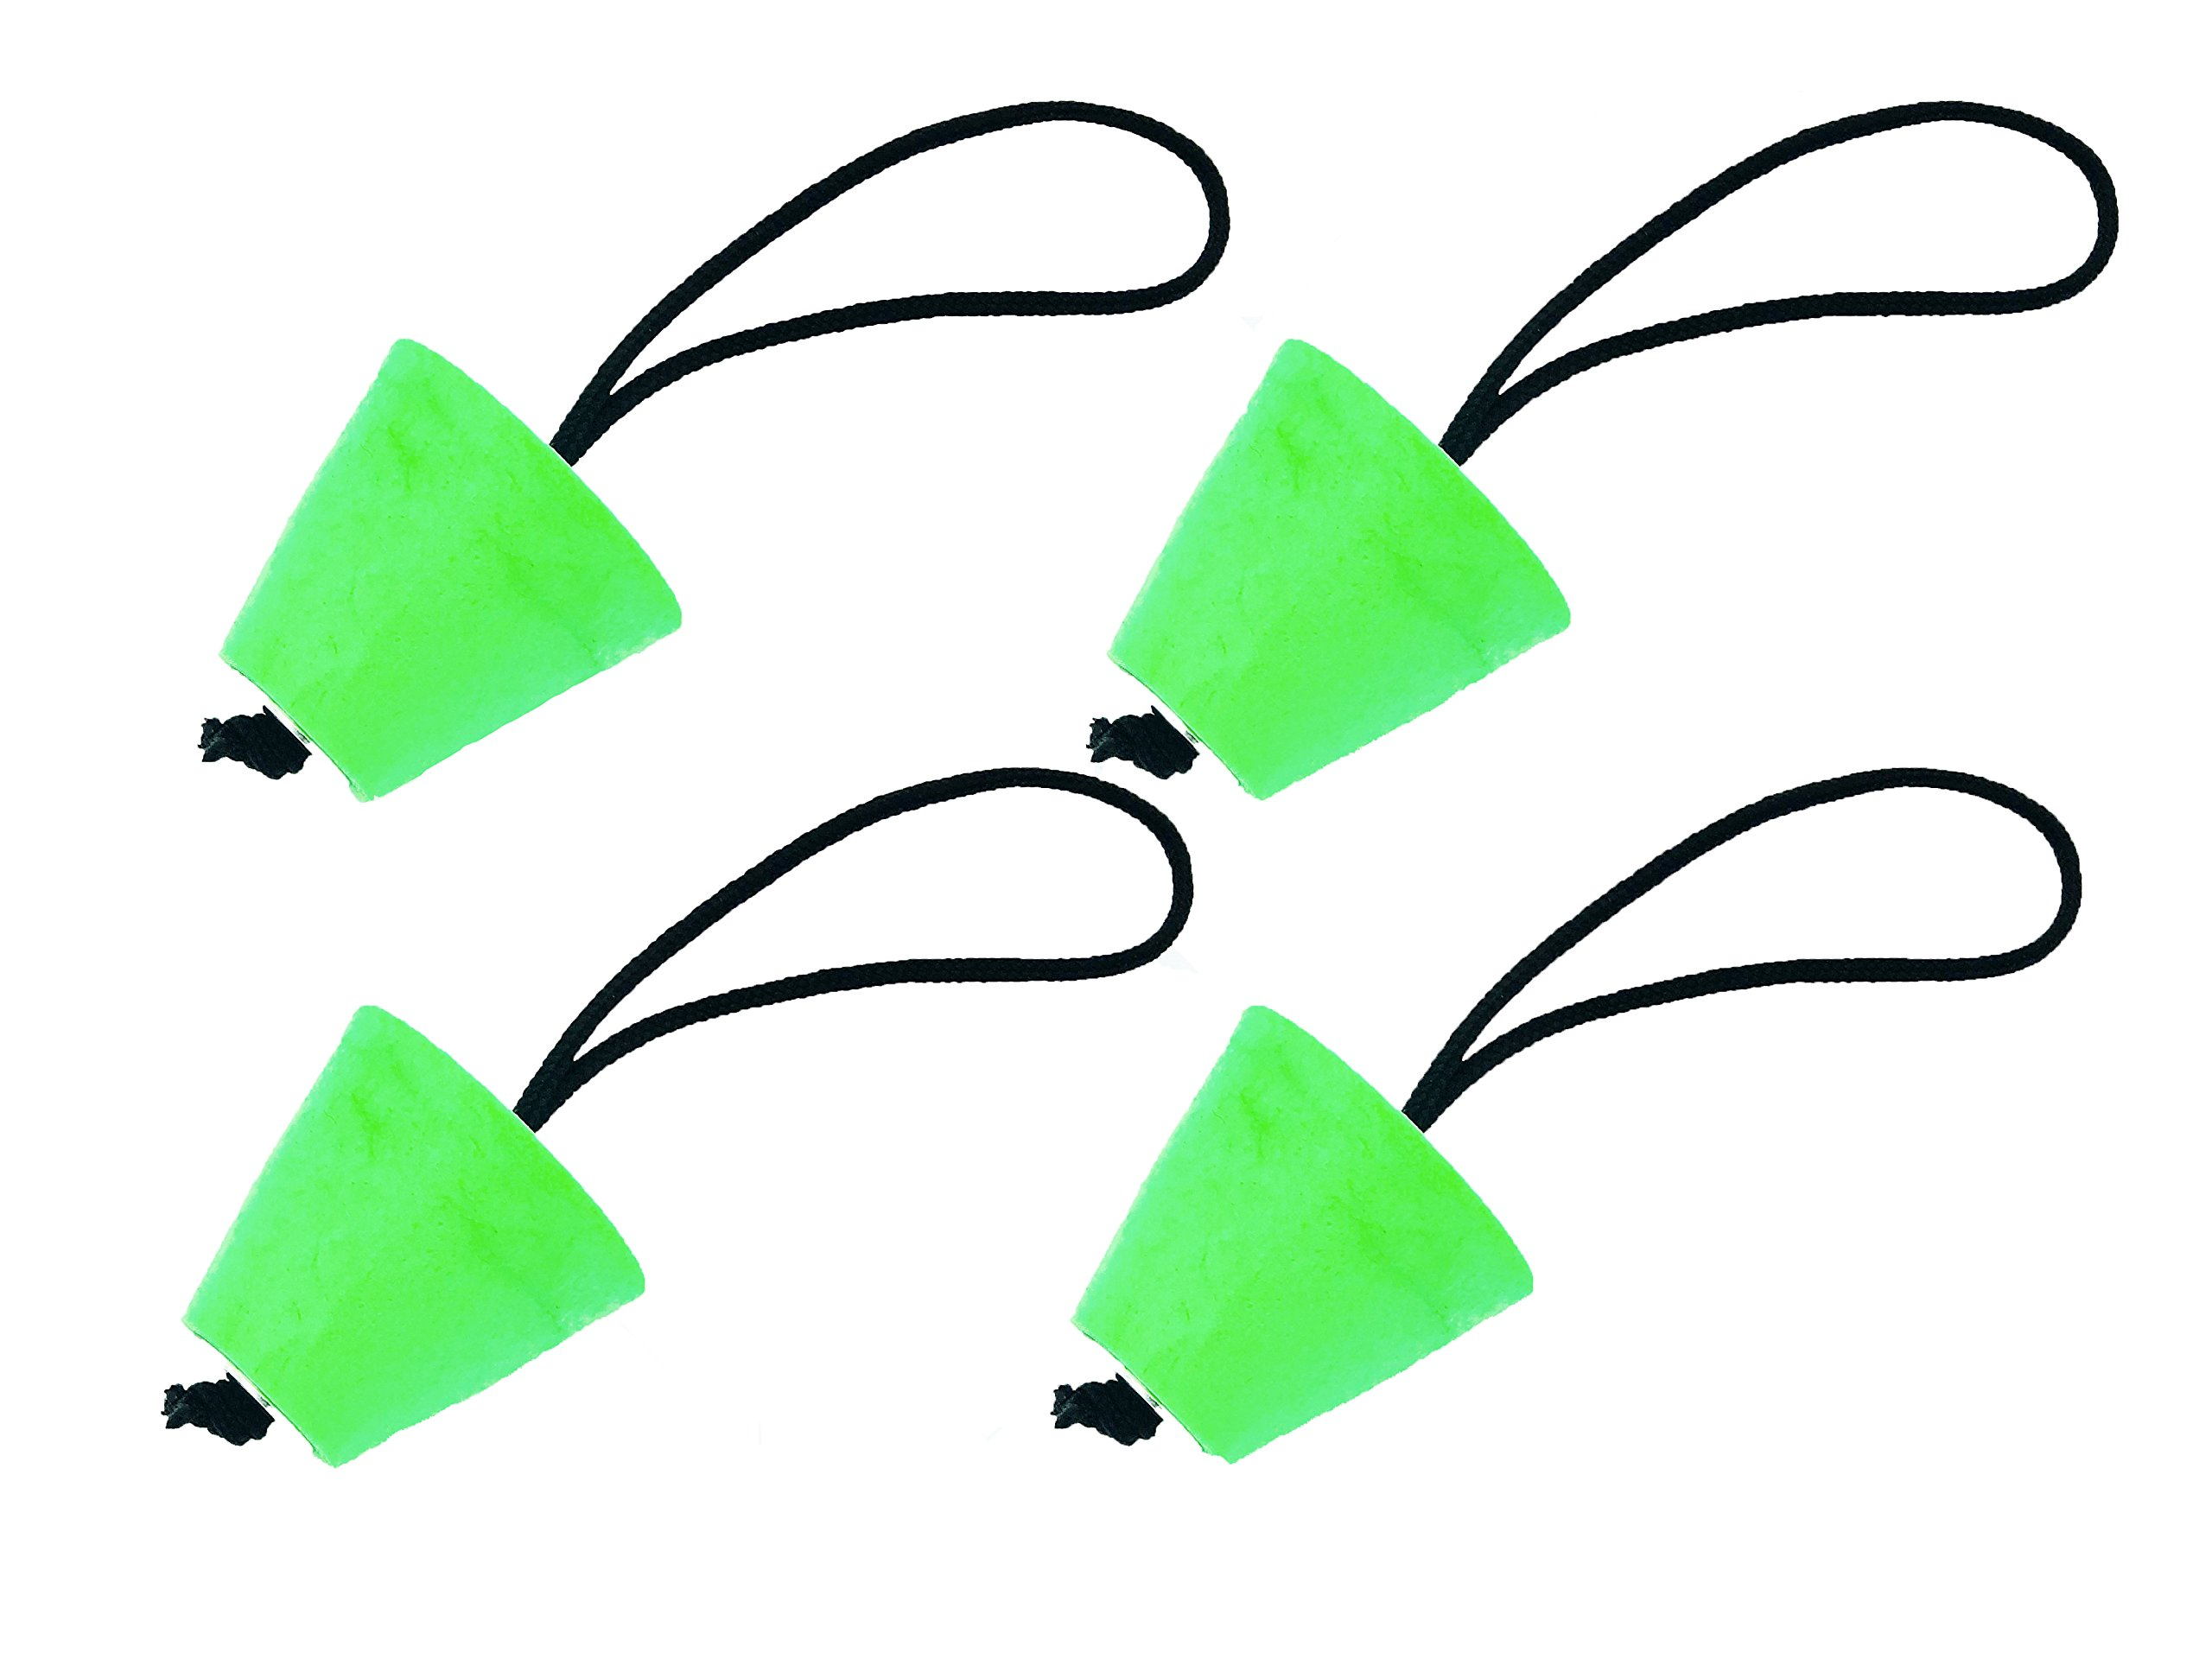 Kaelt's 4 Pack Universal Kayak Scupper Plug, Neon Green Compressible Silicone Foam Stops with Pull String